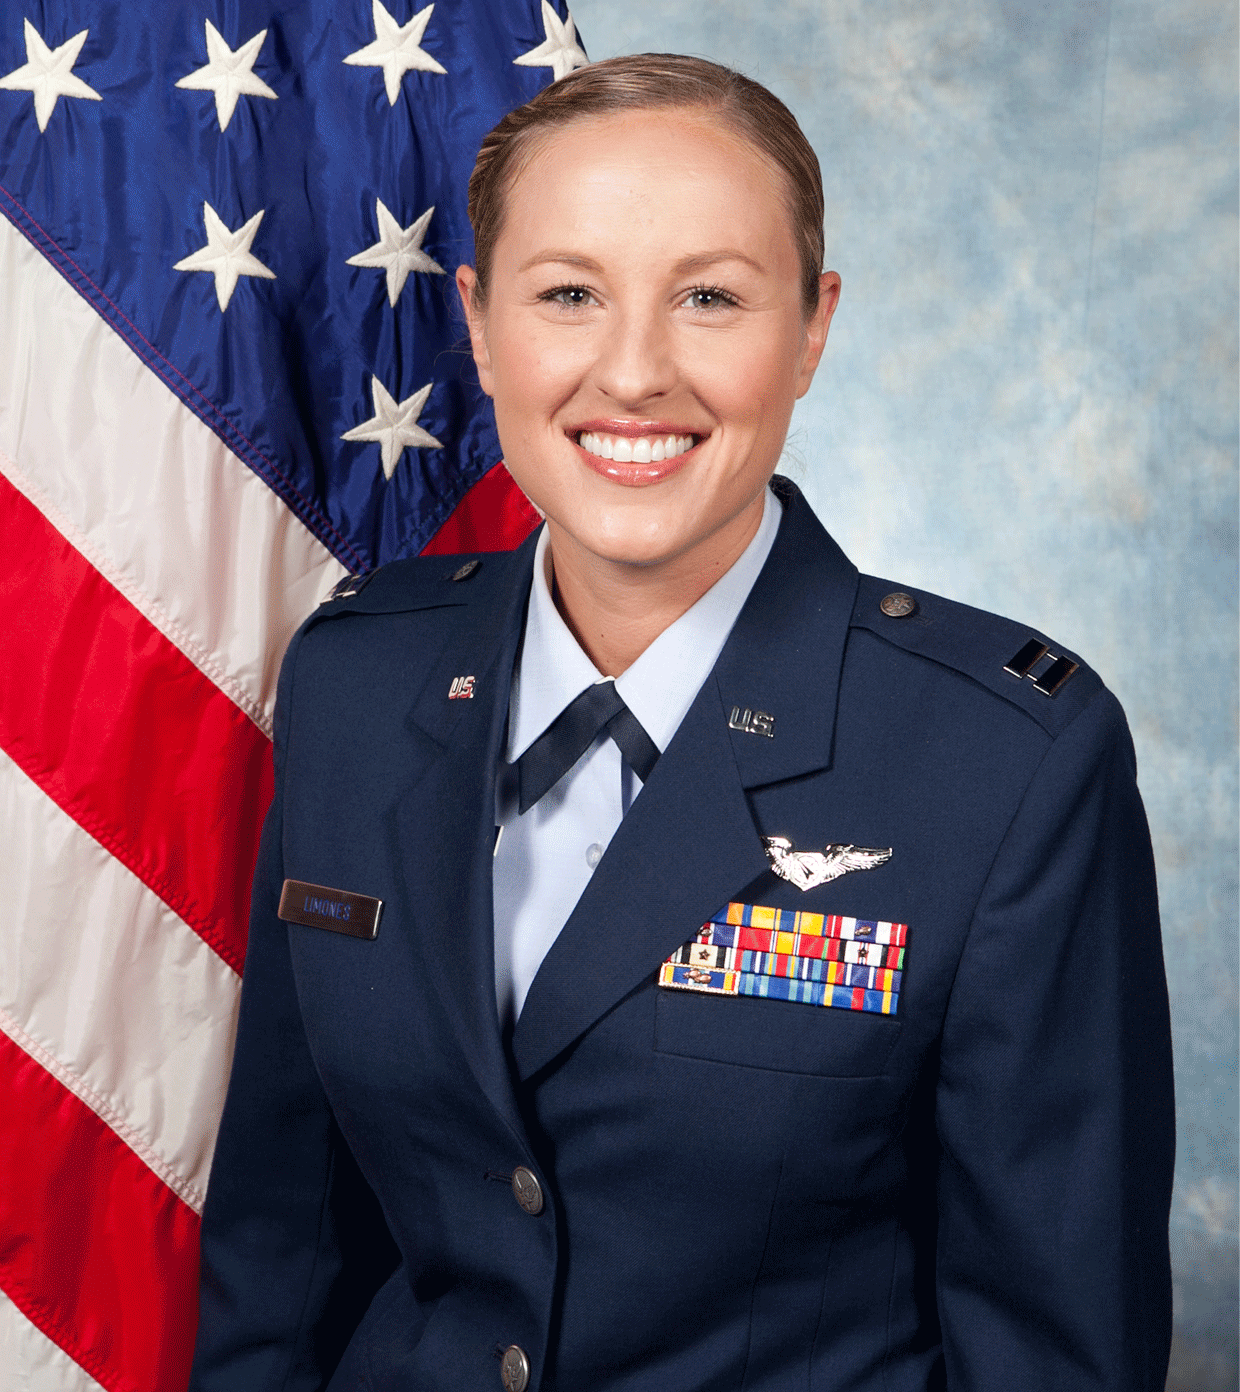 is an Air Force captain and will be seen wearing